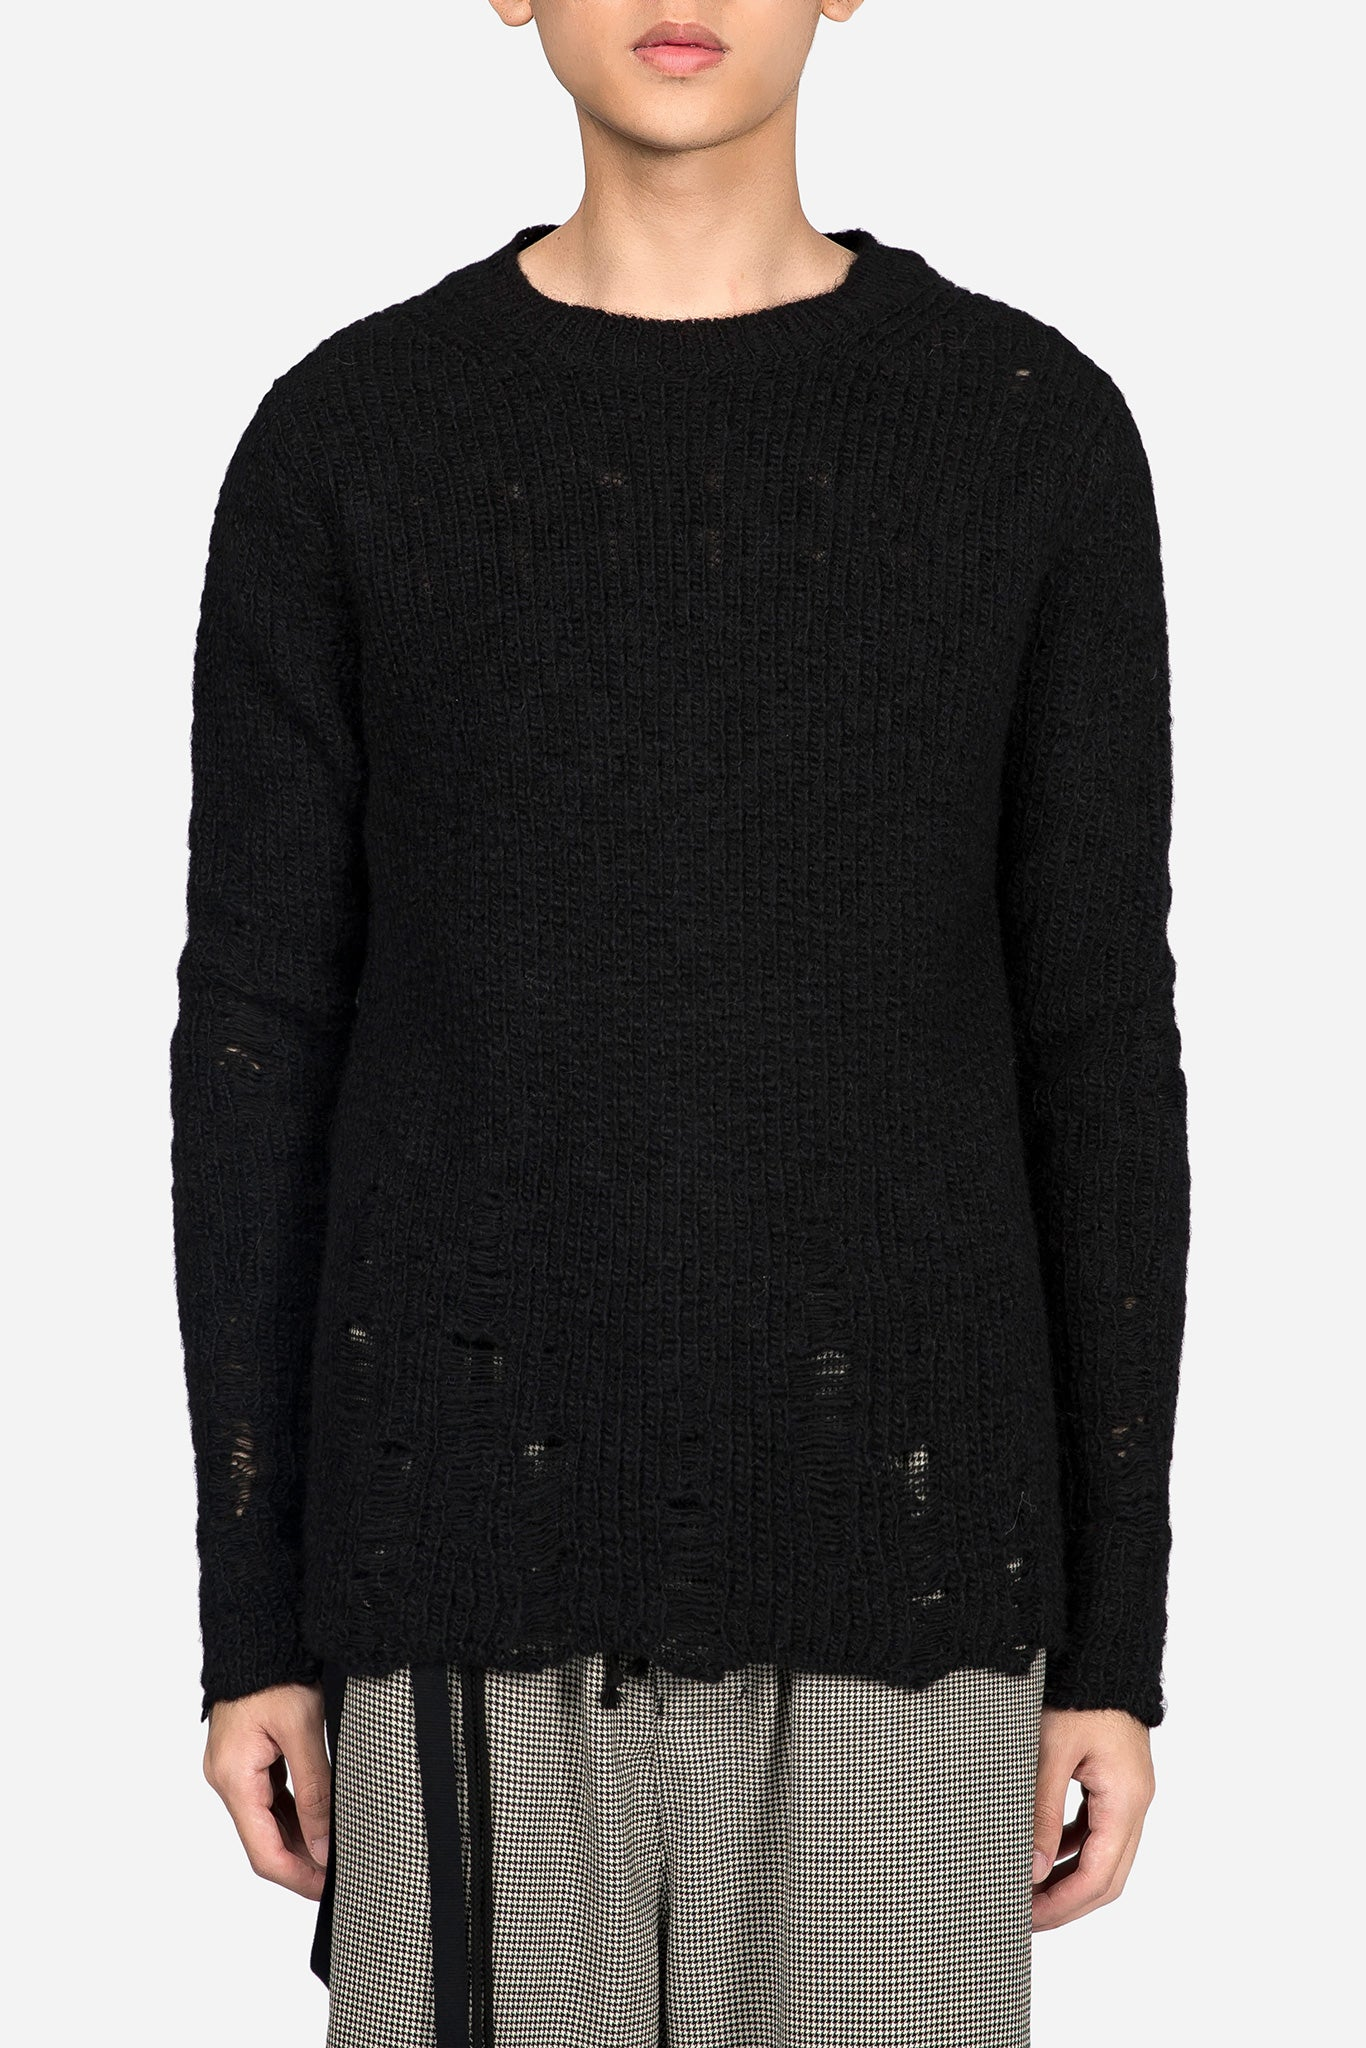 Oversized Distressed Knit Black